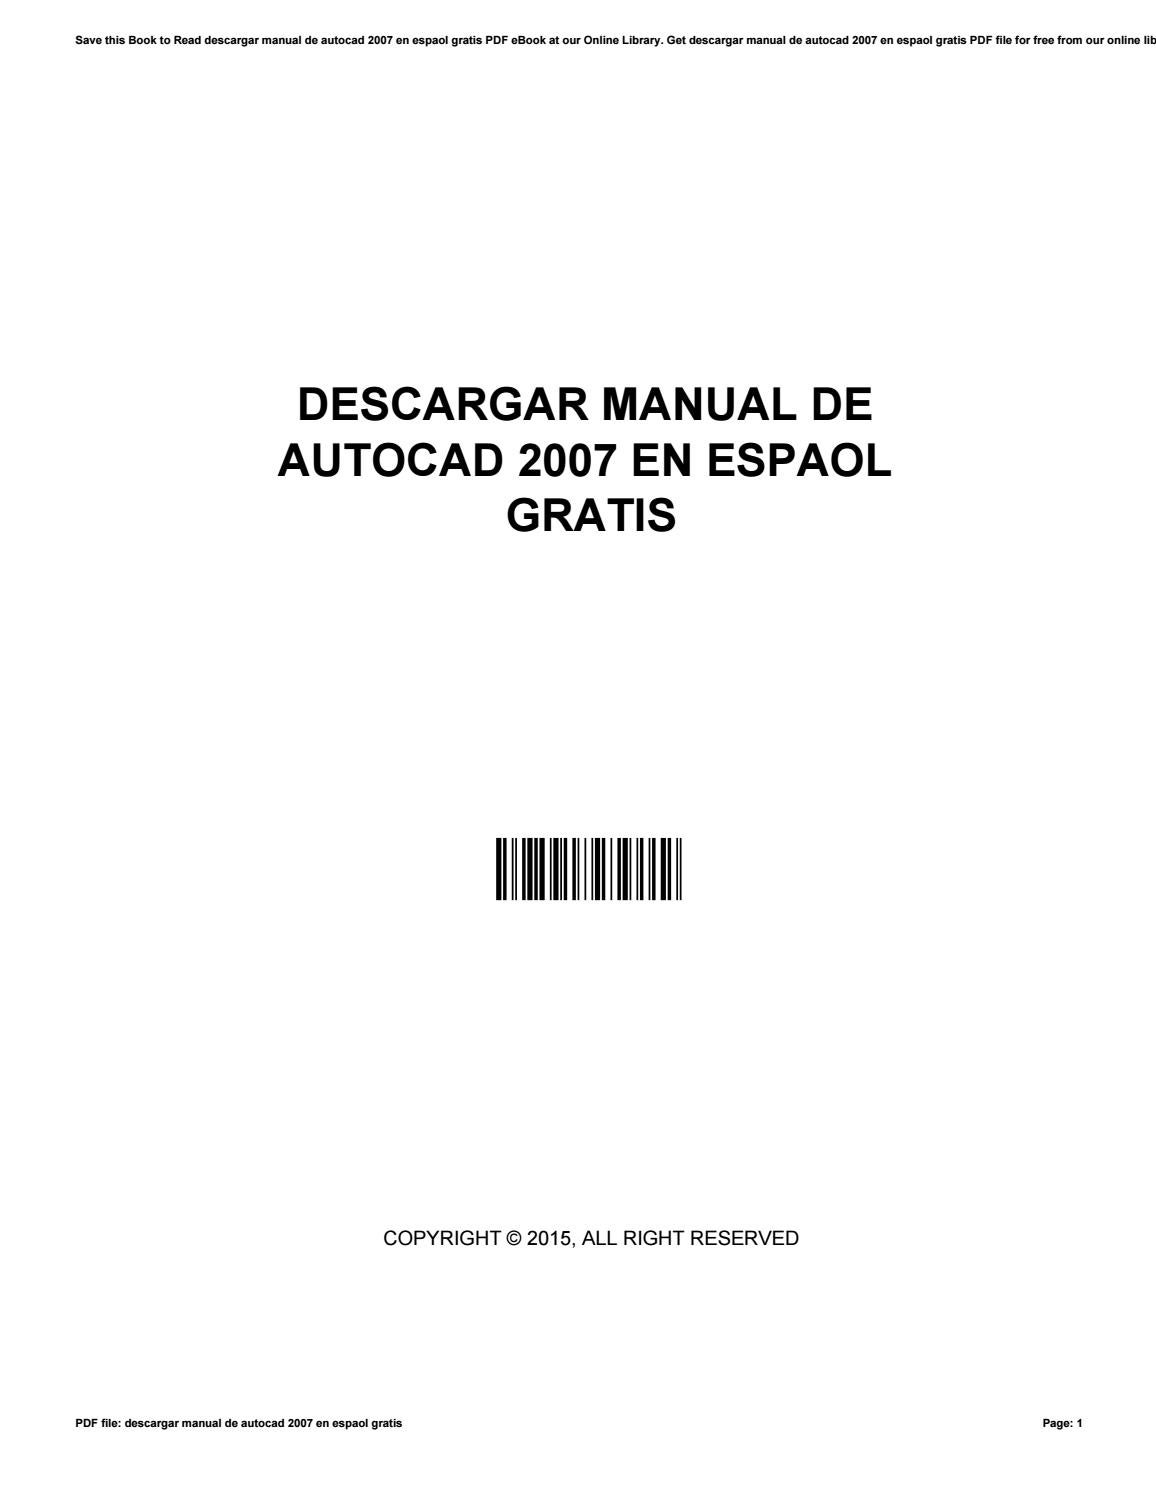 Descargar manual de autocad 2007 en espaol gratis by IreneEarly2648 - issuu